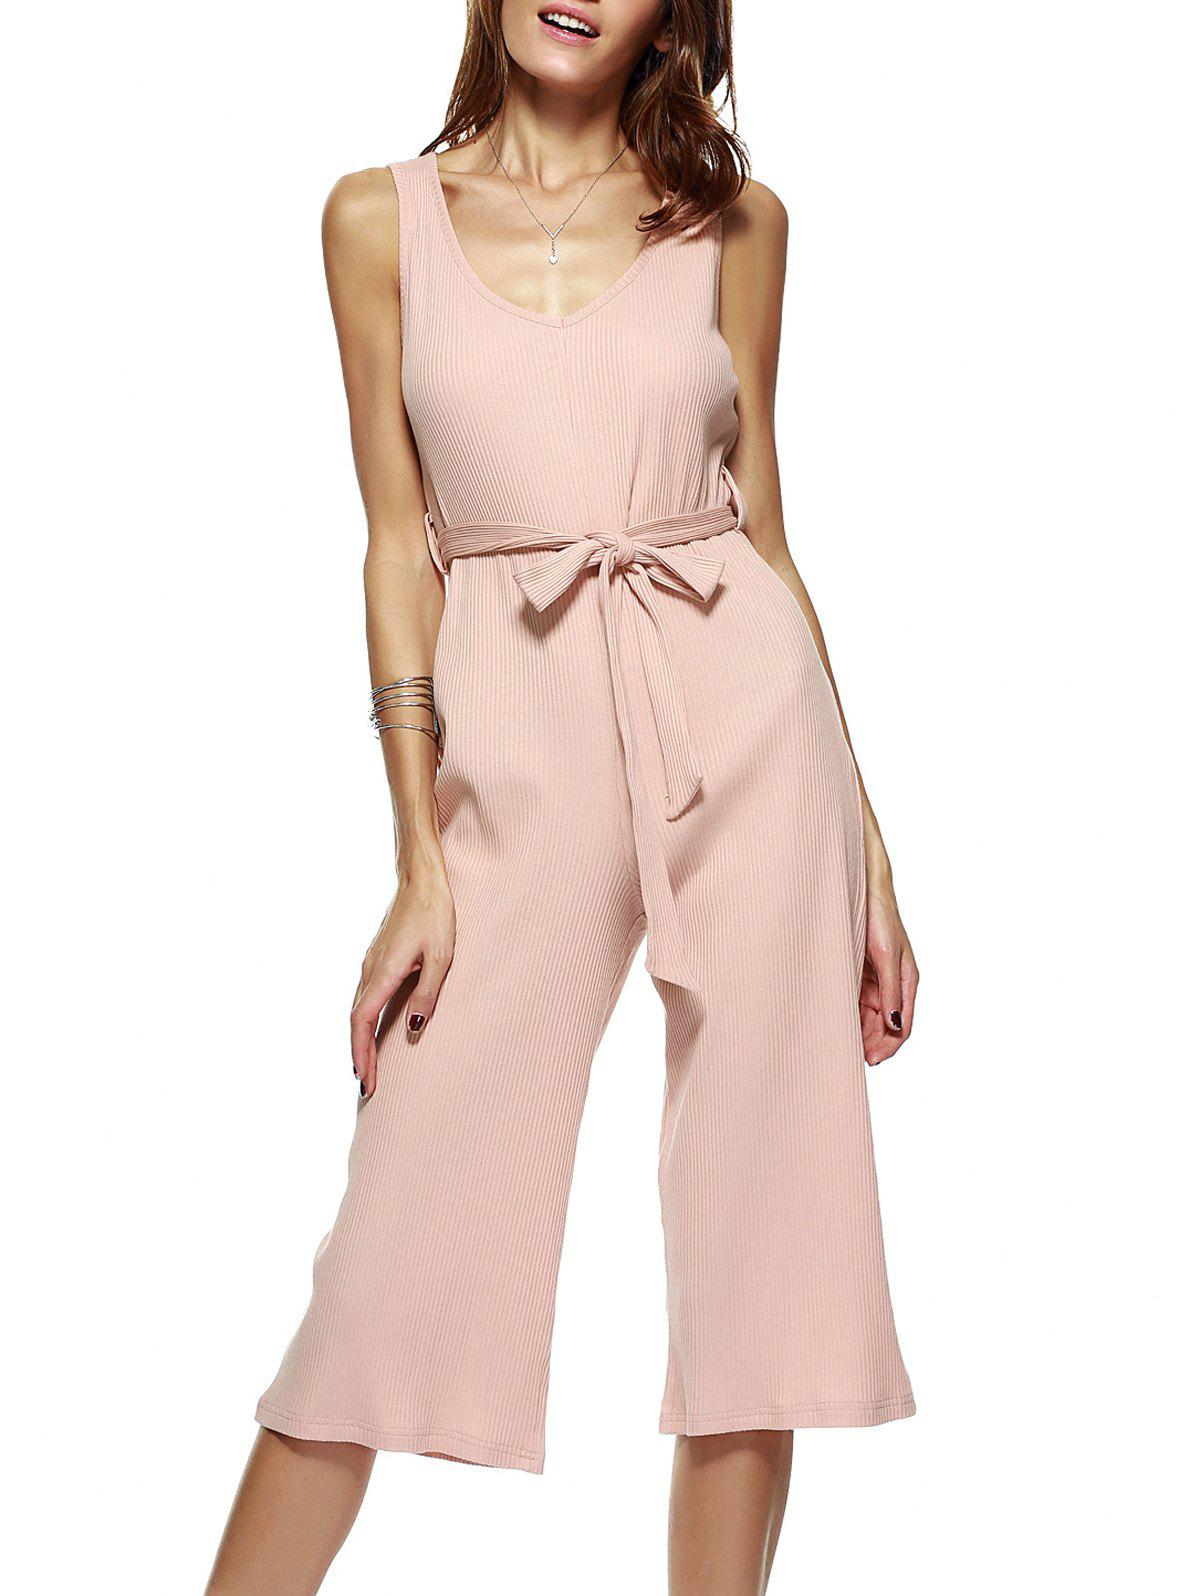 Brief Women's Pleated High Waist Jumpsuit - SHALLOW PINK M